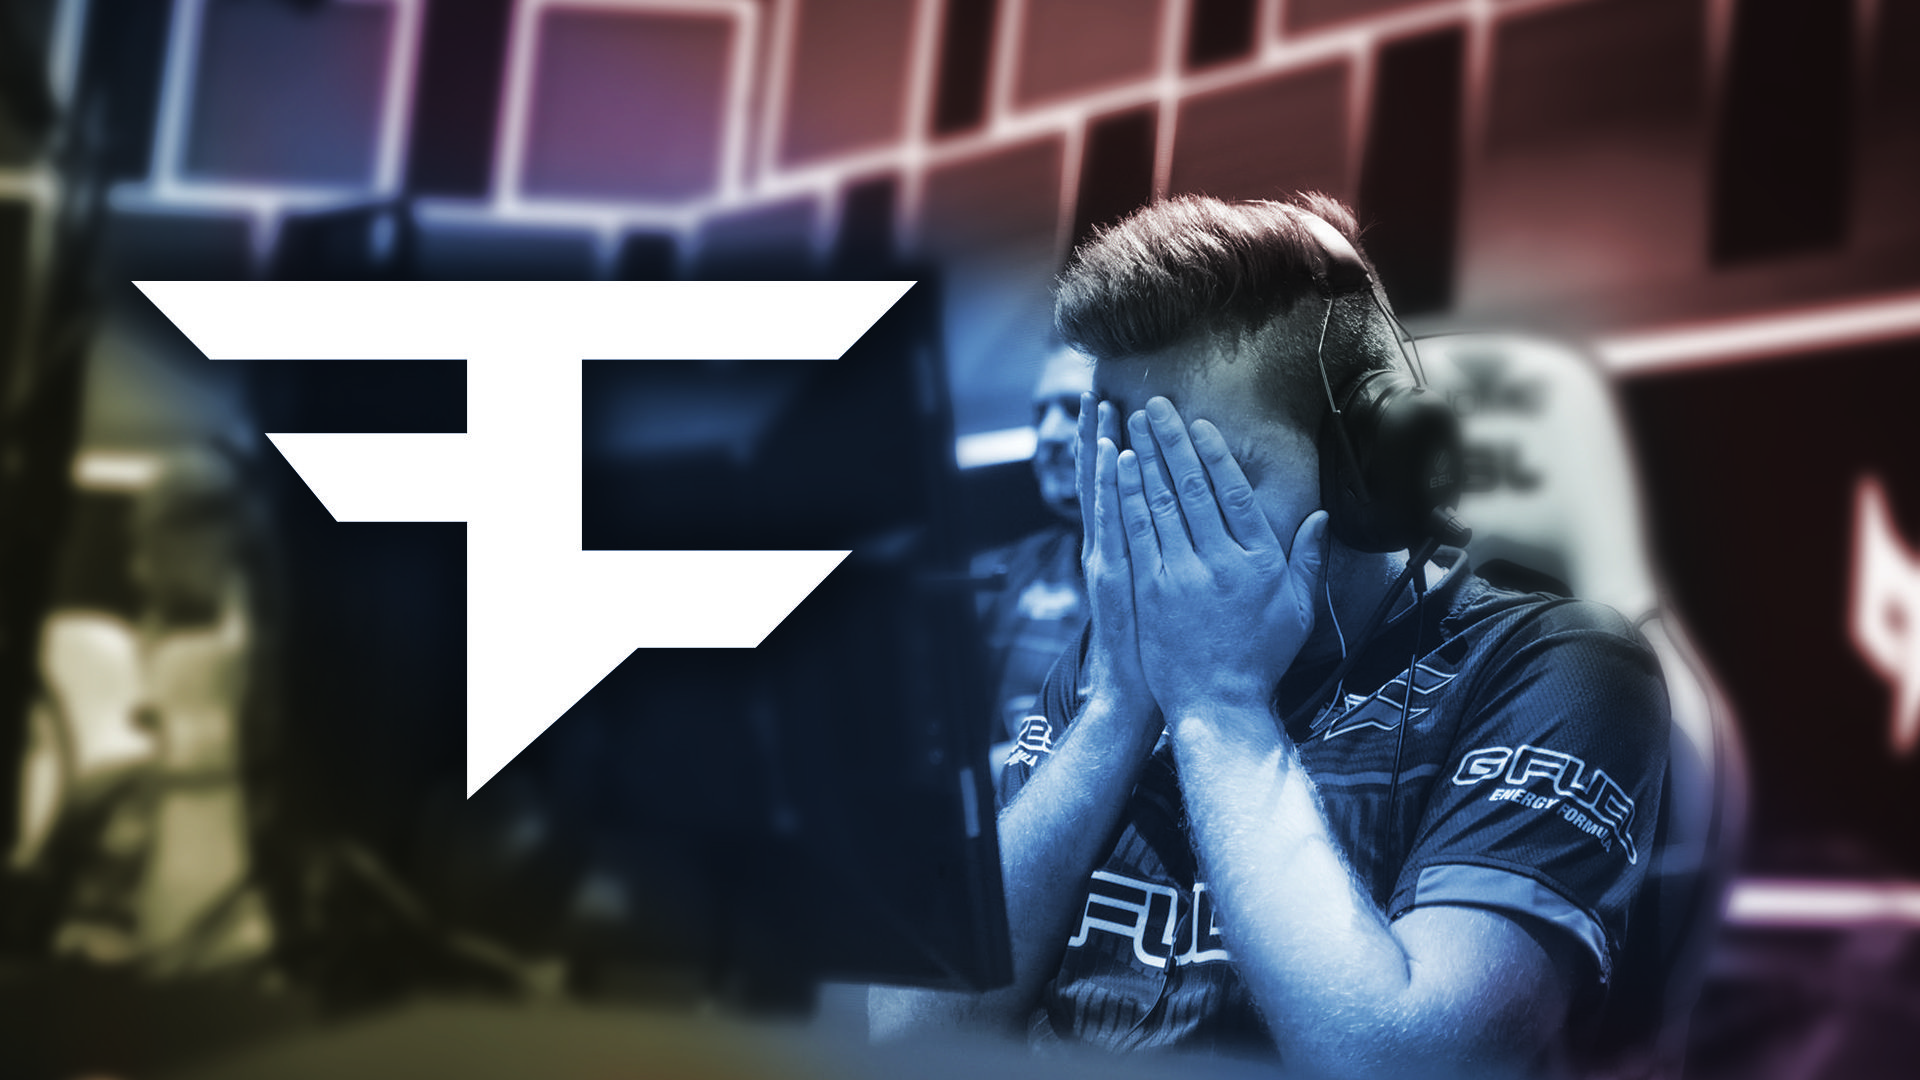 Not the best picture of Niko but here is a FaZe background atleast 1920x1080